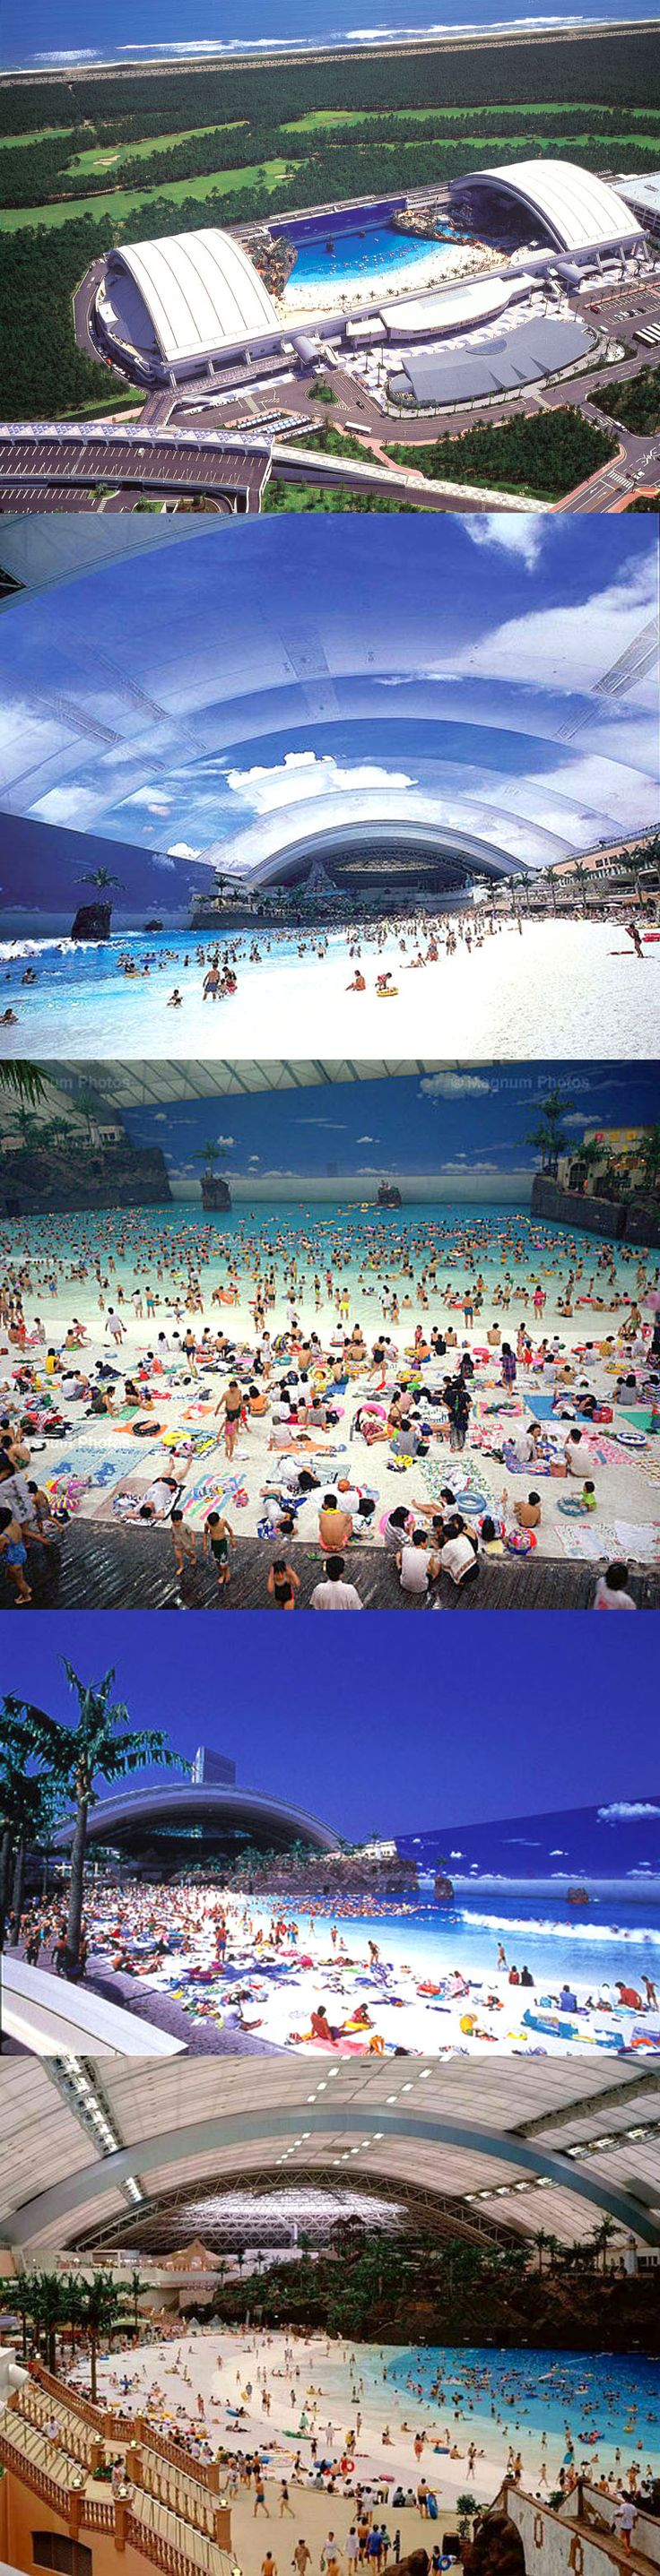 "Seagaia Ocean Dome, Miyazaki, Japan.   World's Largest Indoor Swimming Pool -Phoenix Seagaia Resort Hotel - Miyazaki, Japan. The ""Ocean Dome"" offers an sand beach, artificial volcano, wave generating machine, and a painted sunny skyline for a roof with a capacity for 10,000 people."